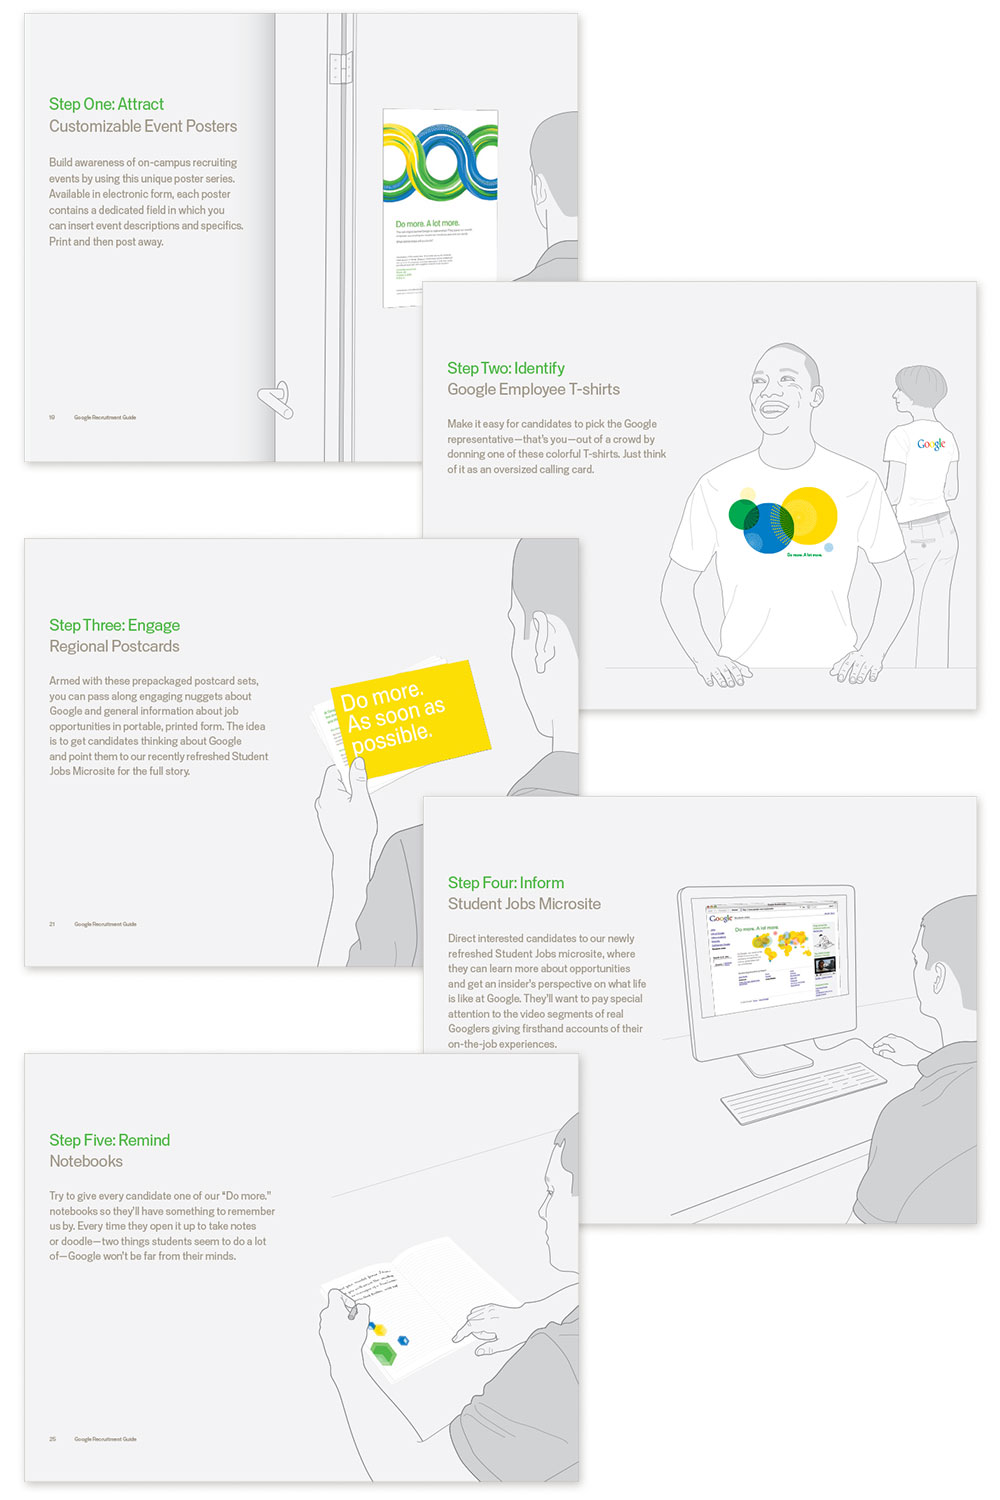 Google Rollout Guide